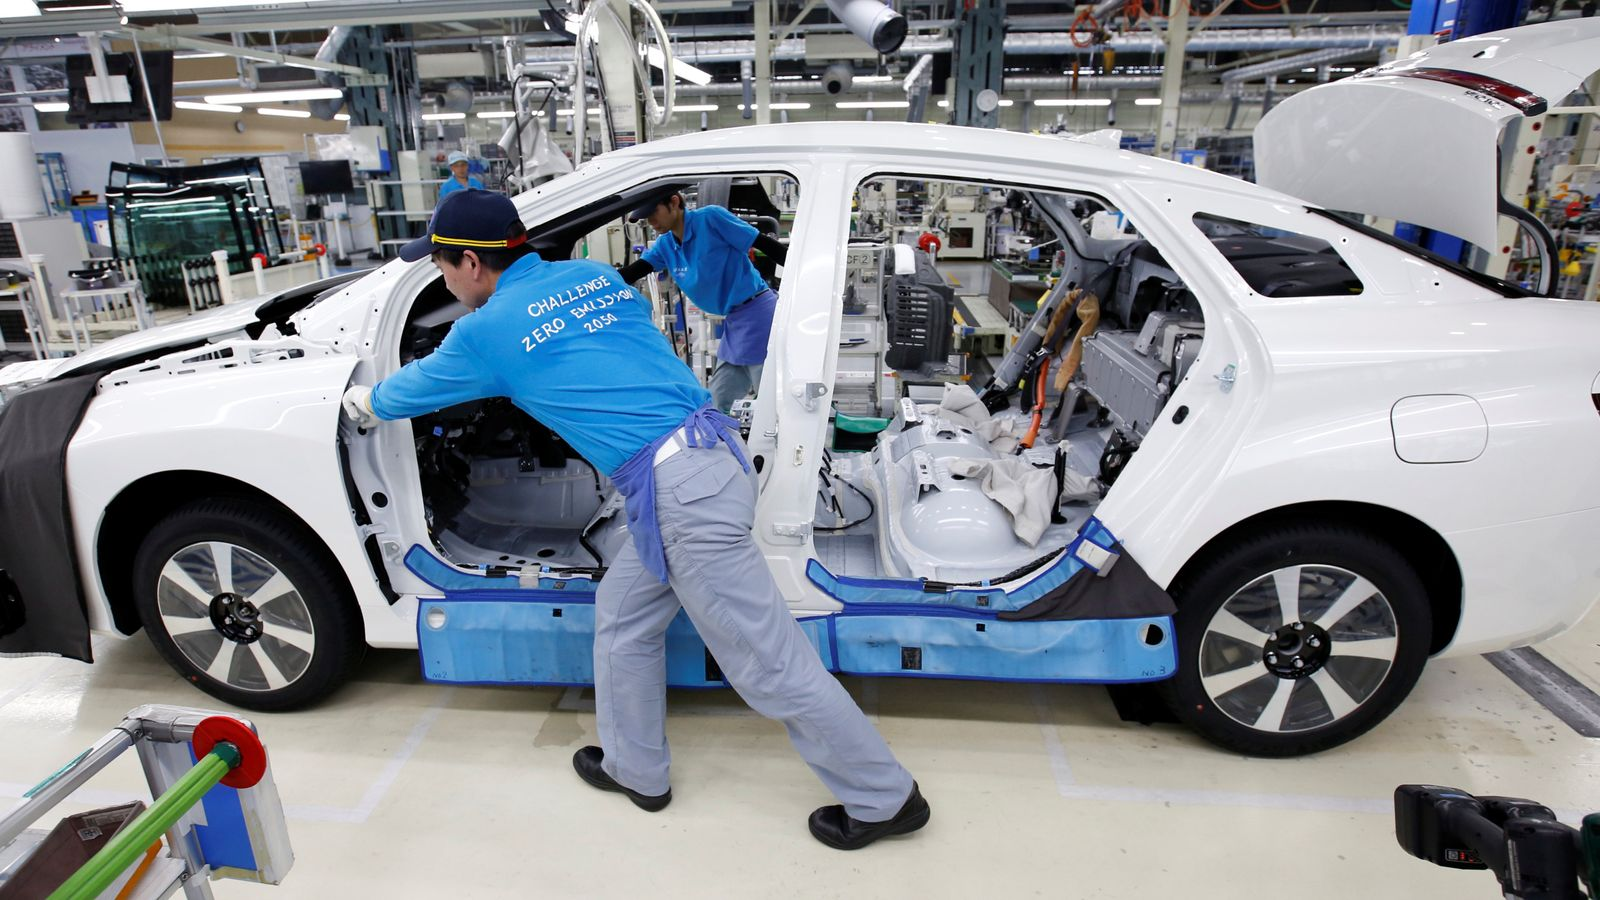 Toyota slashes production as it becomes latest carmaker hit by global chip shortage